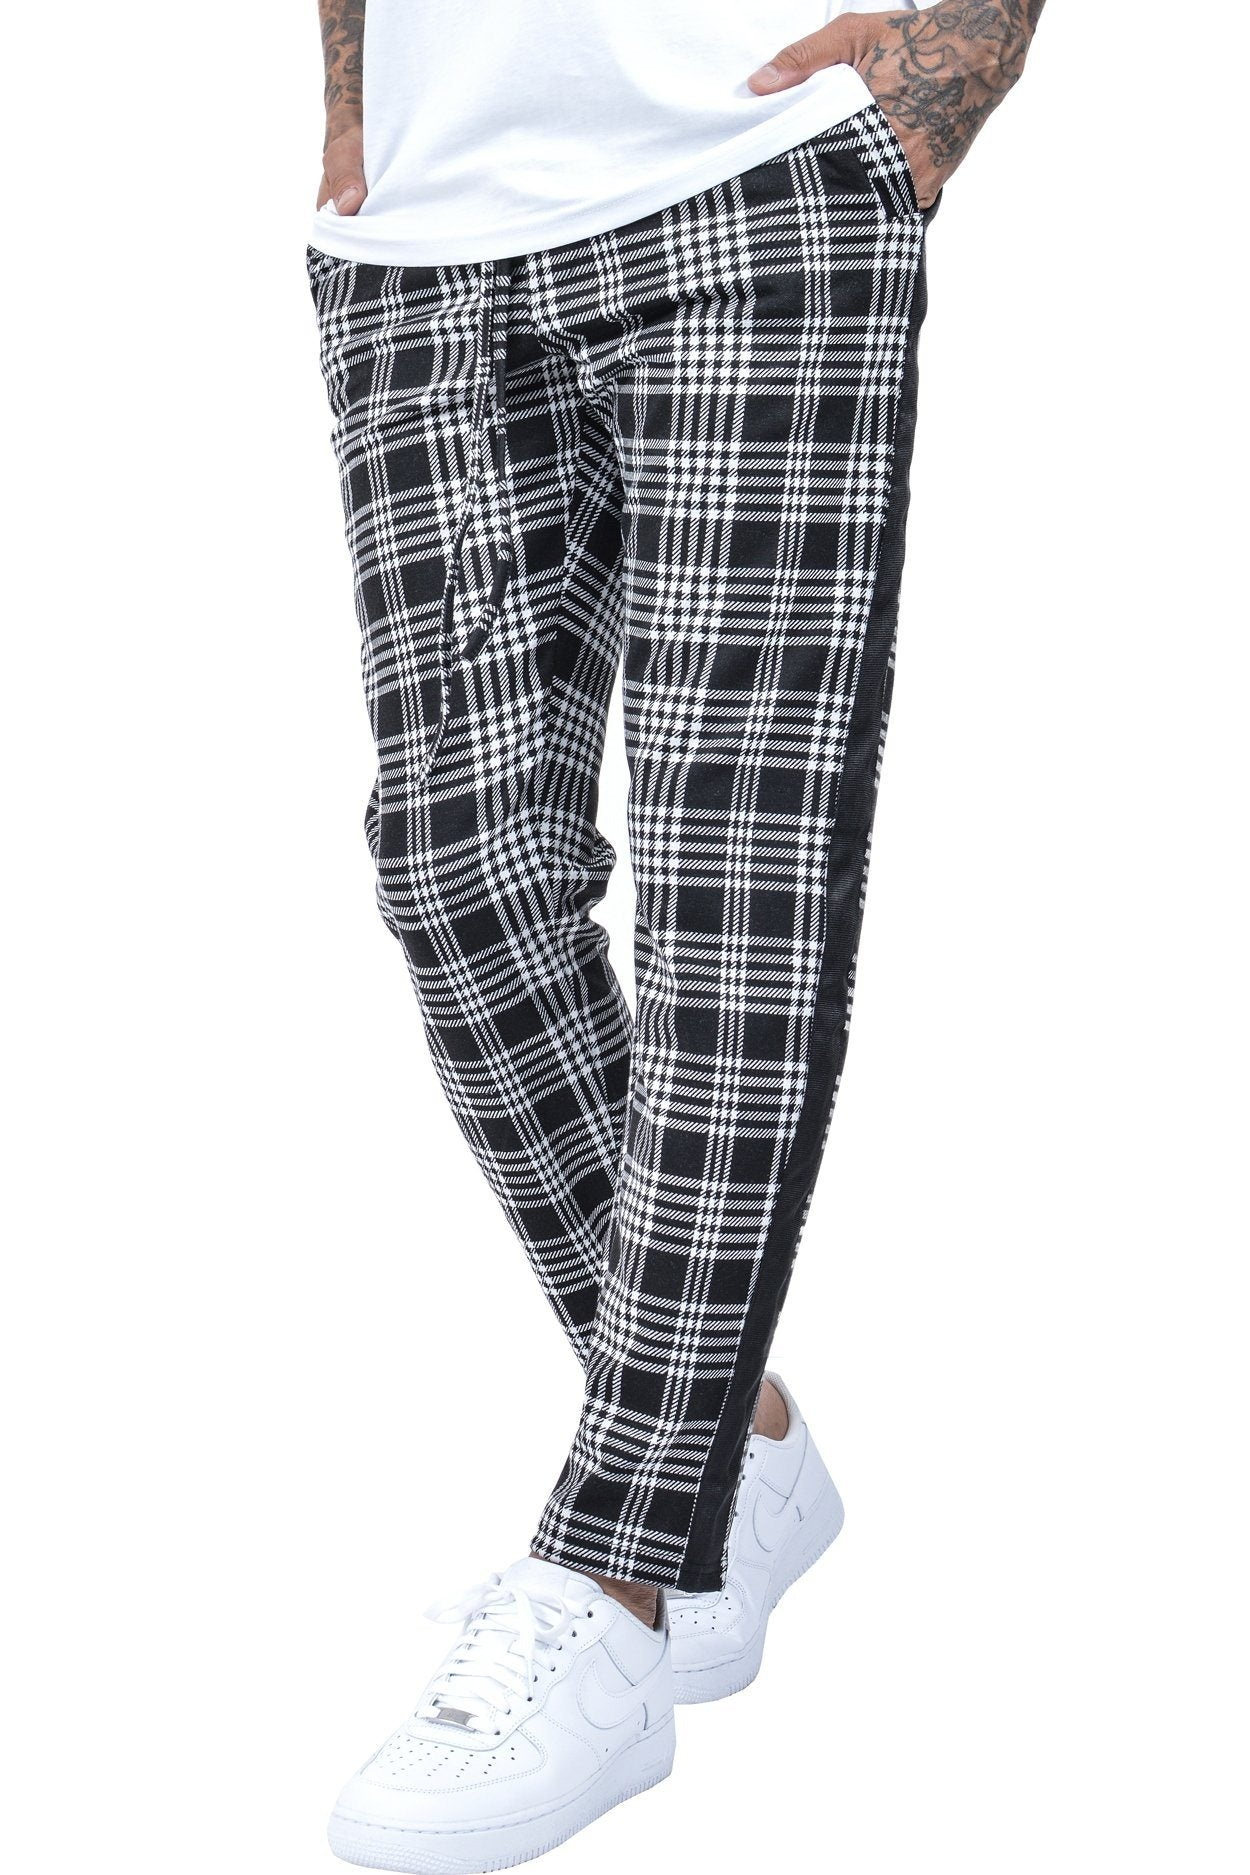 Luca Stripe Pants Black White - PEGADOR - Dominate the Hype